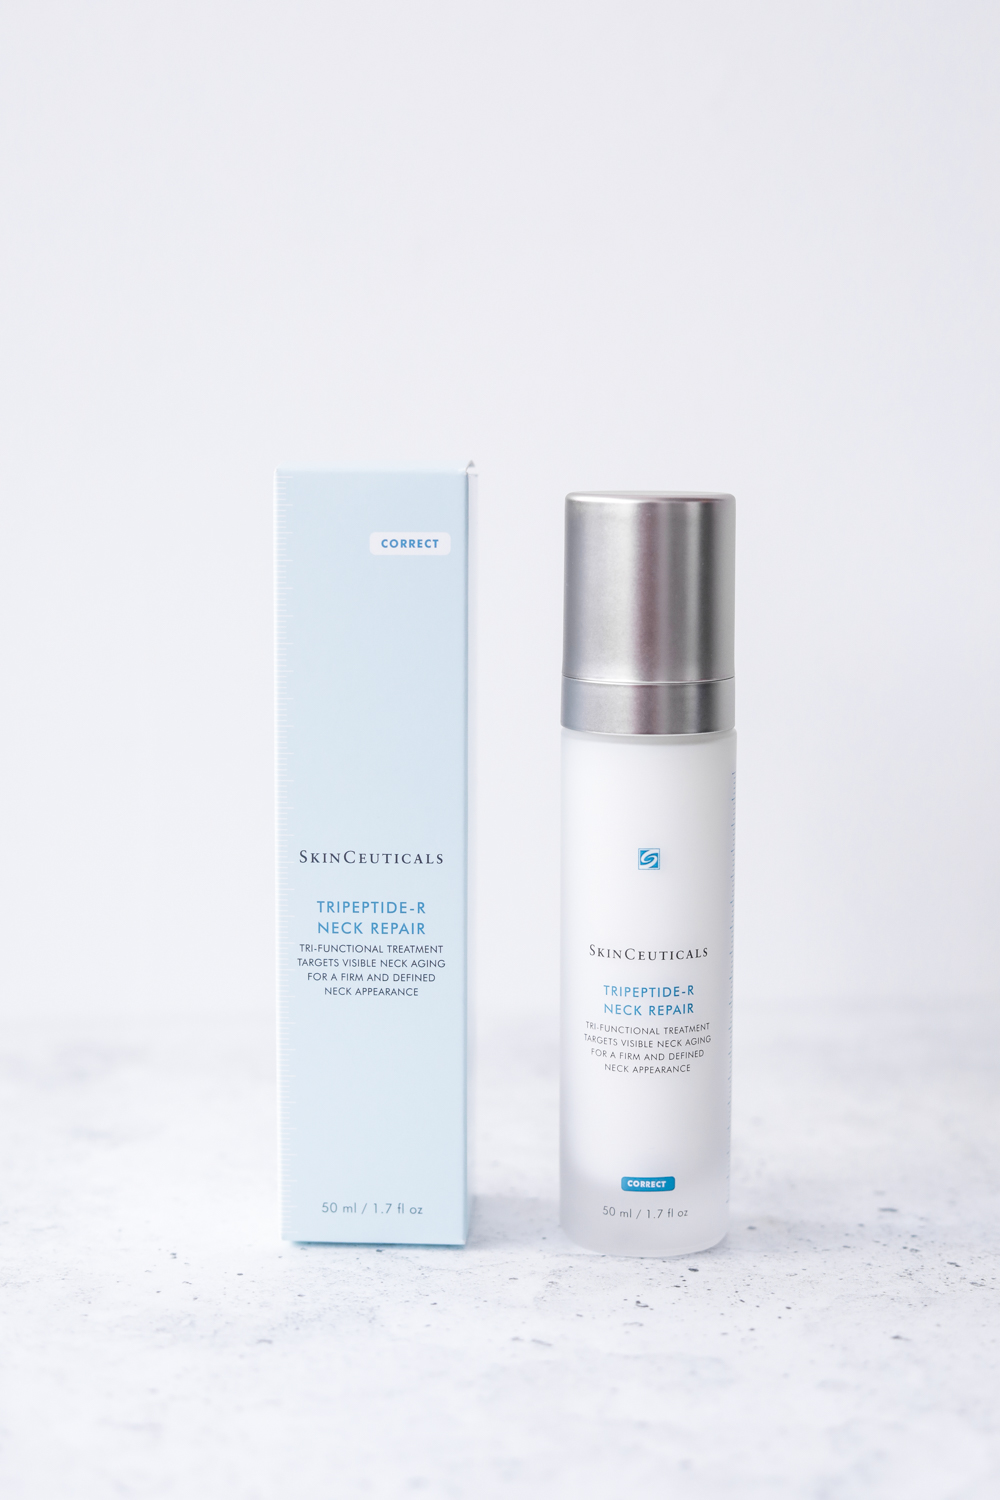 skinceuticals tripeptide neck repair